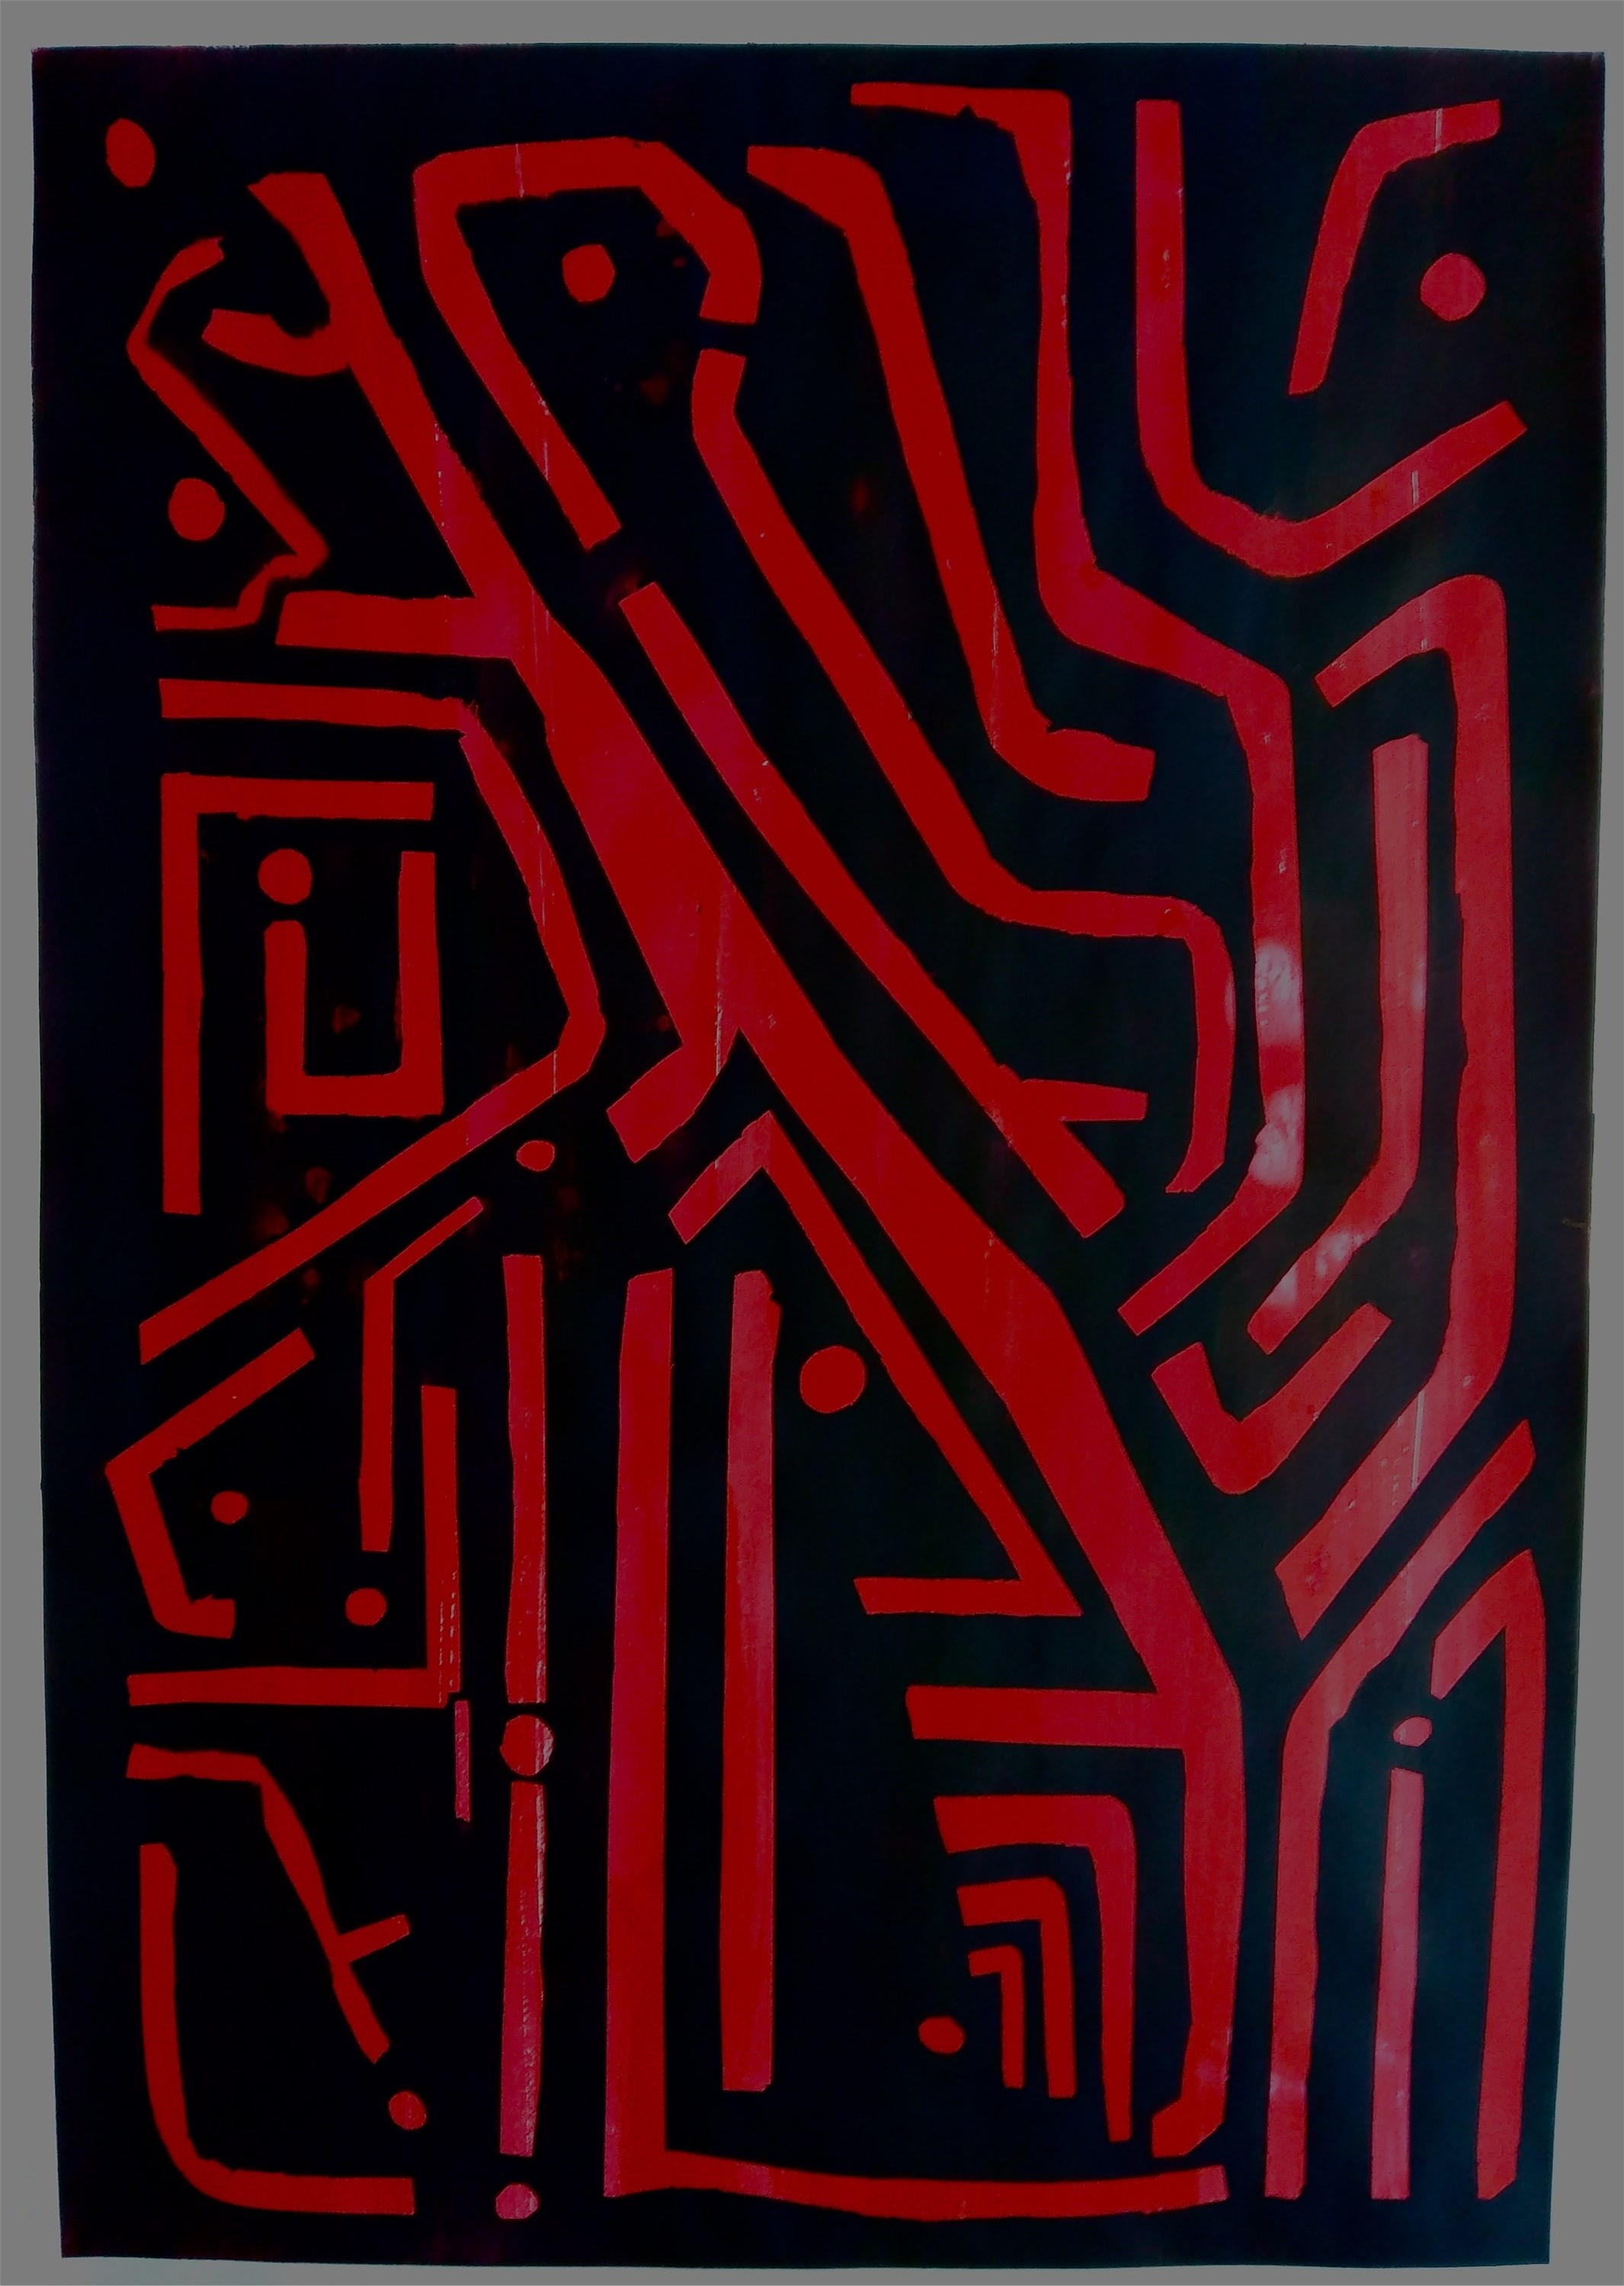 O breve circuito de um poema, original Abstract Acrylic Painting by Nêmêpê Nêmêpê